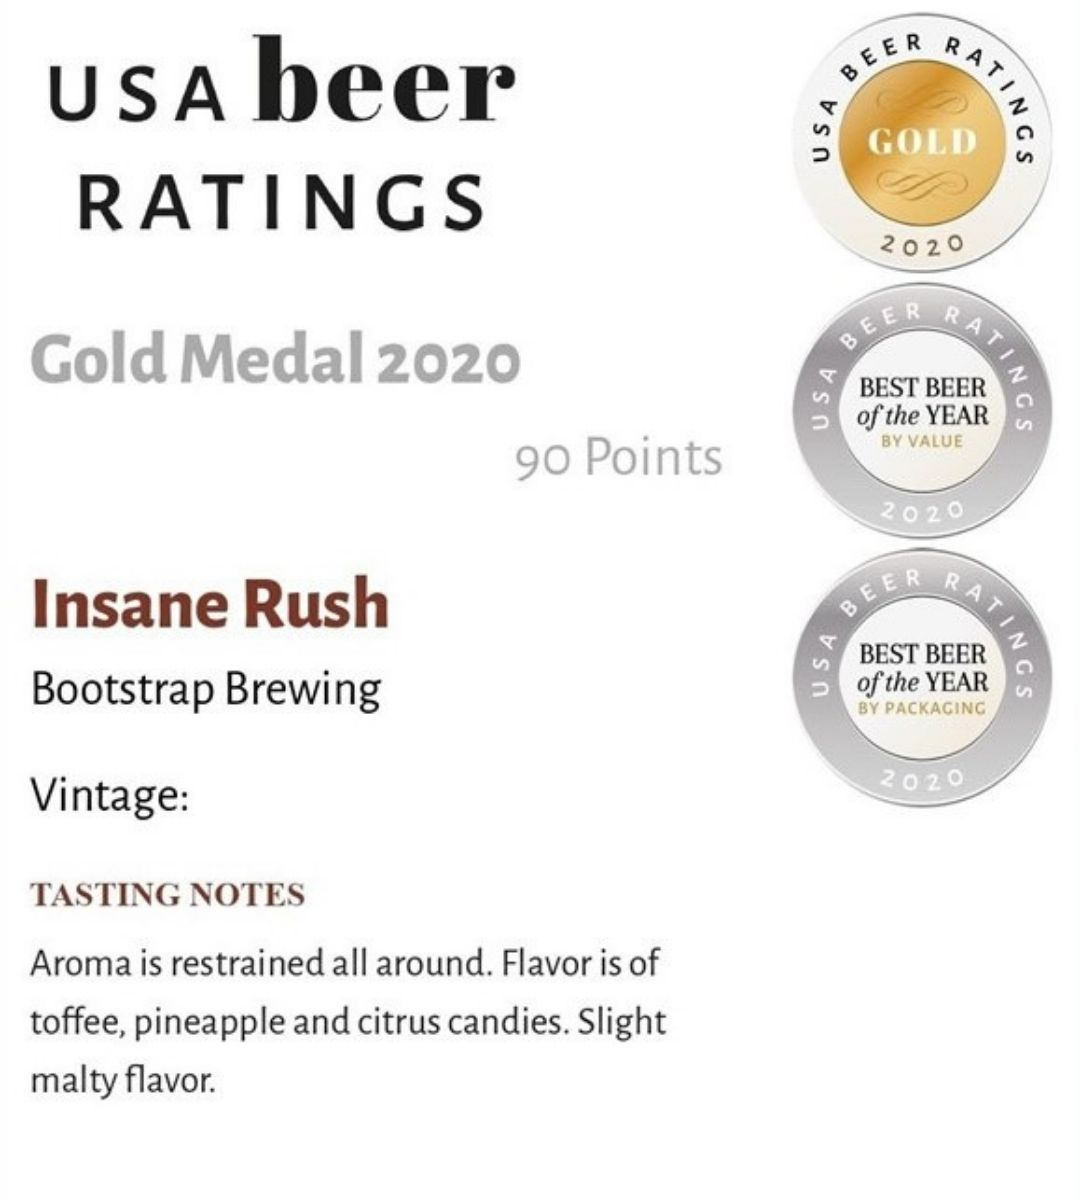 Insane Rush Gold Medal USA Beer Ratings